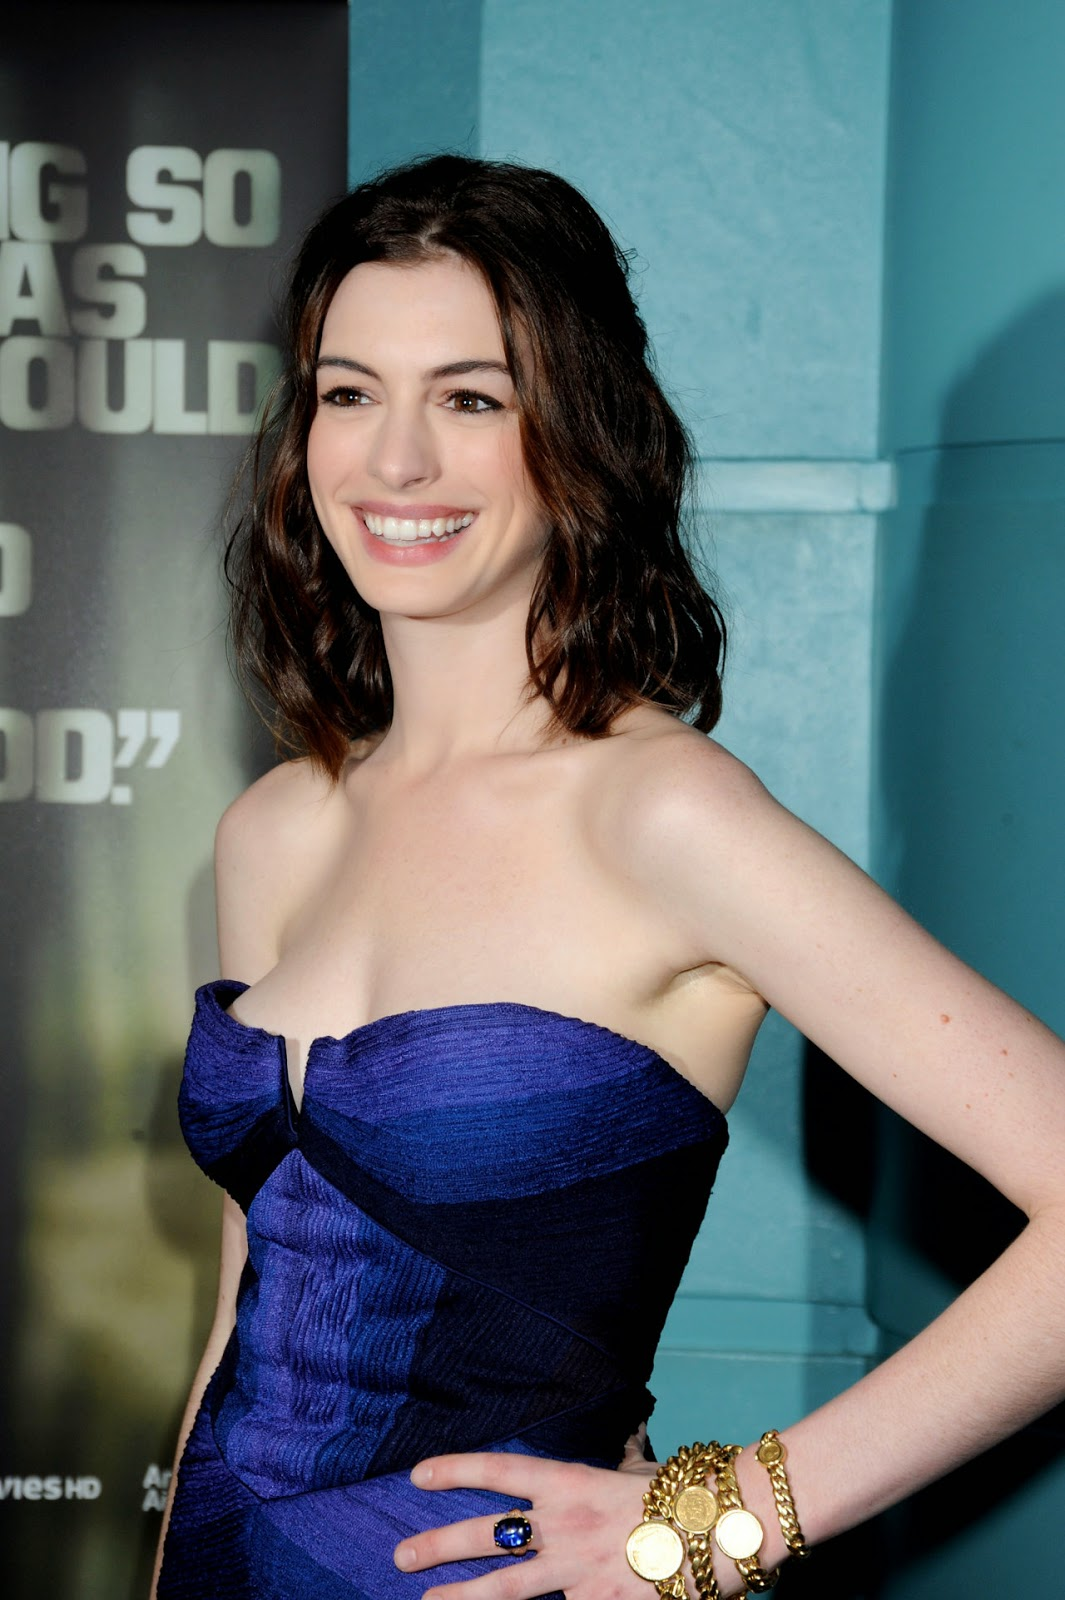 Hot Model Anne Hathaway